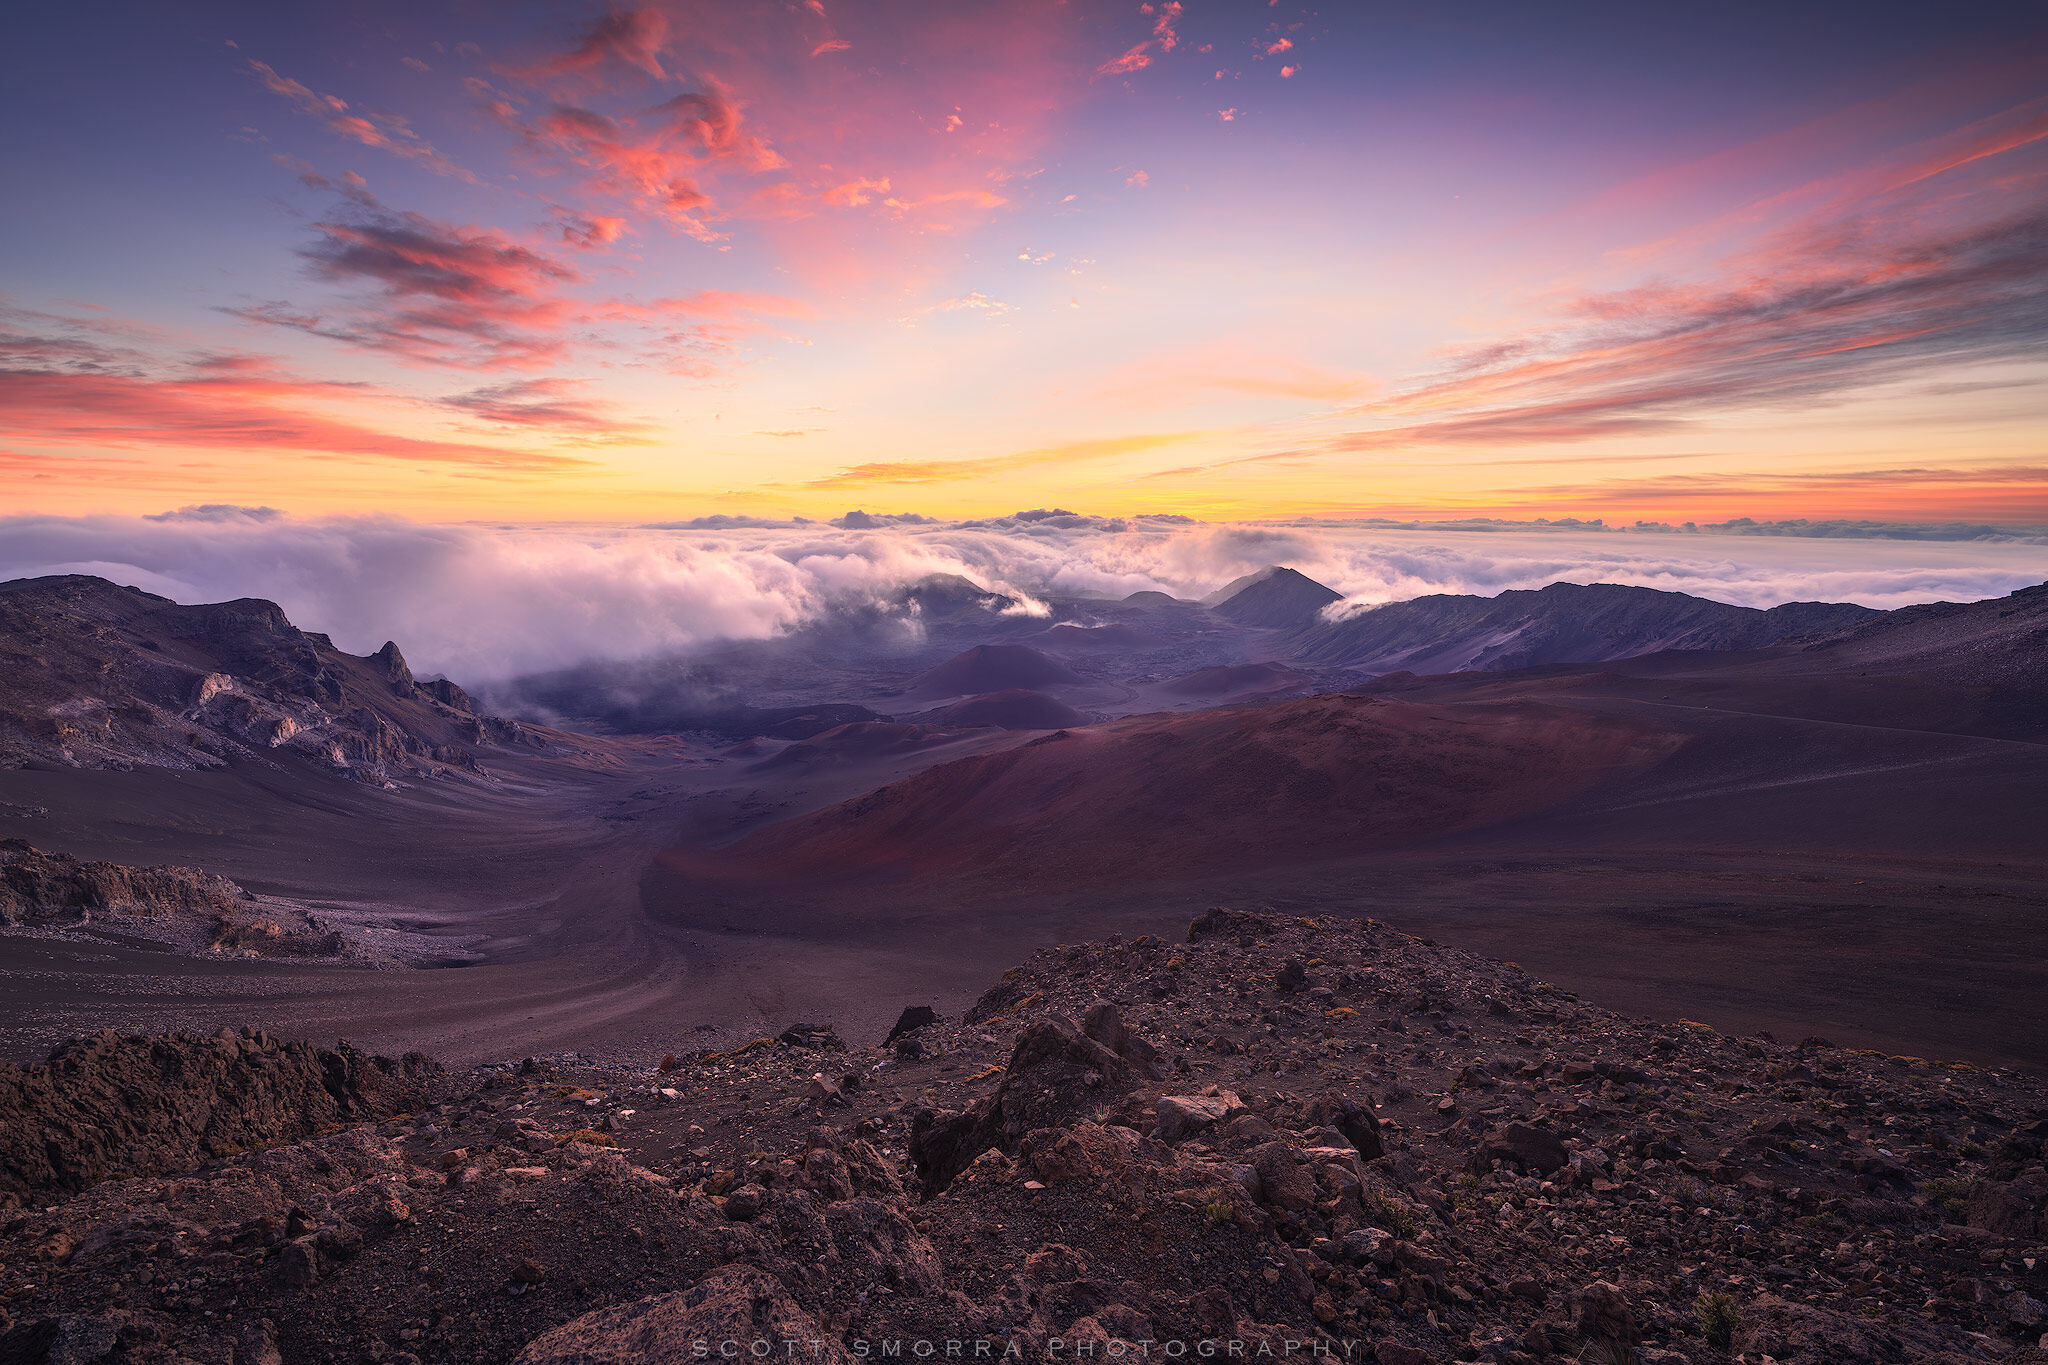 Hawaii, Maui, Haleakala National Park, Sunrise, volcano, clouds, summit, reservations, tropical, volcanic, experience, photo